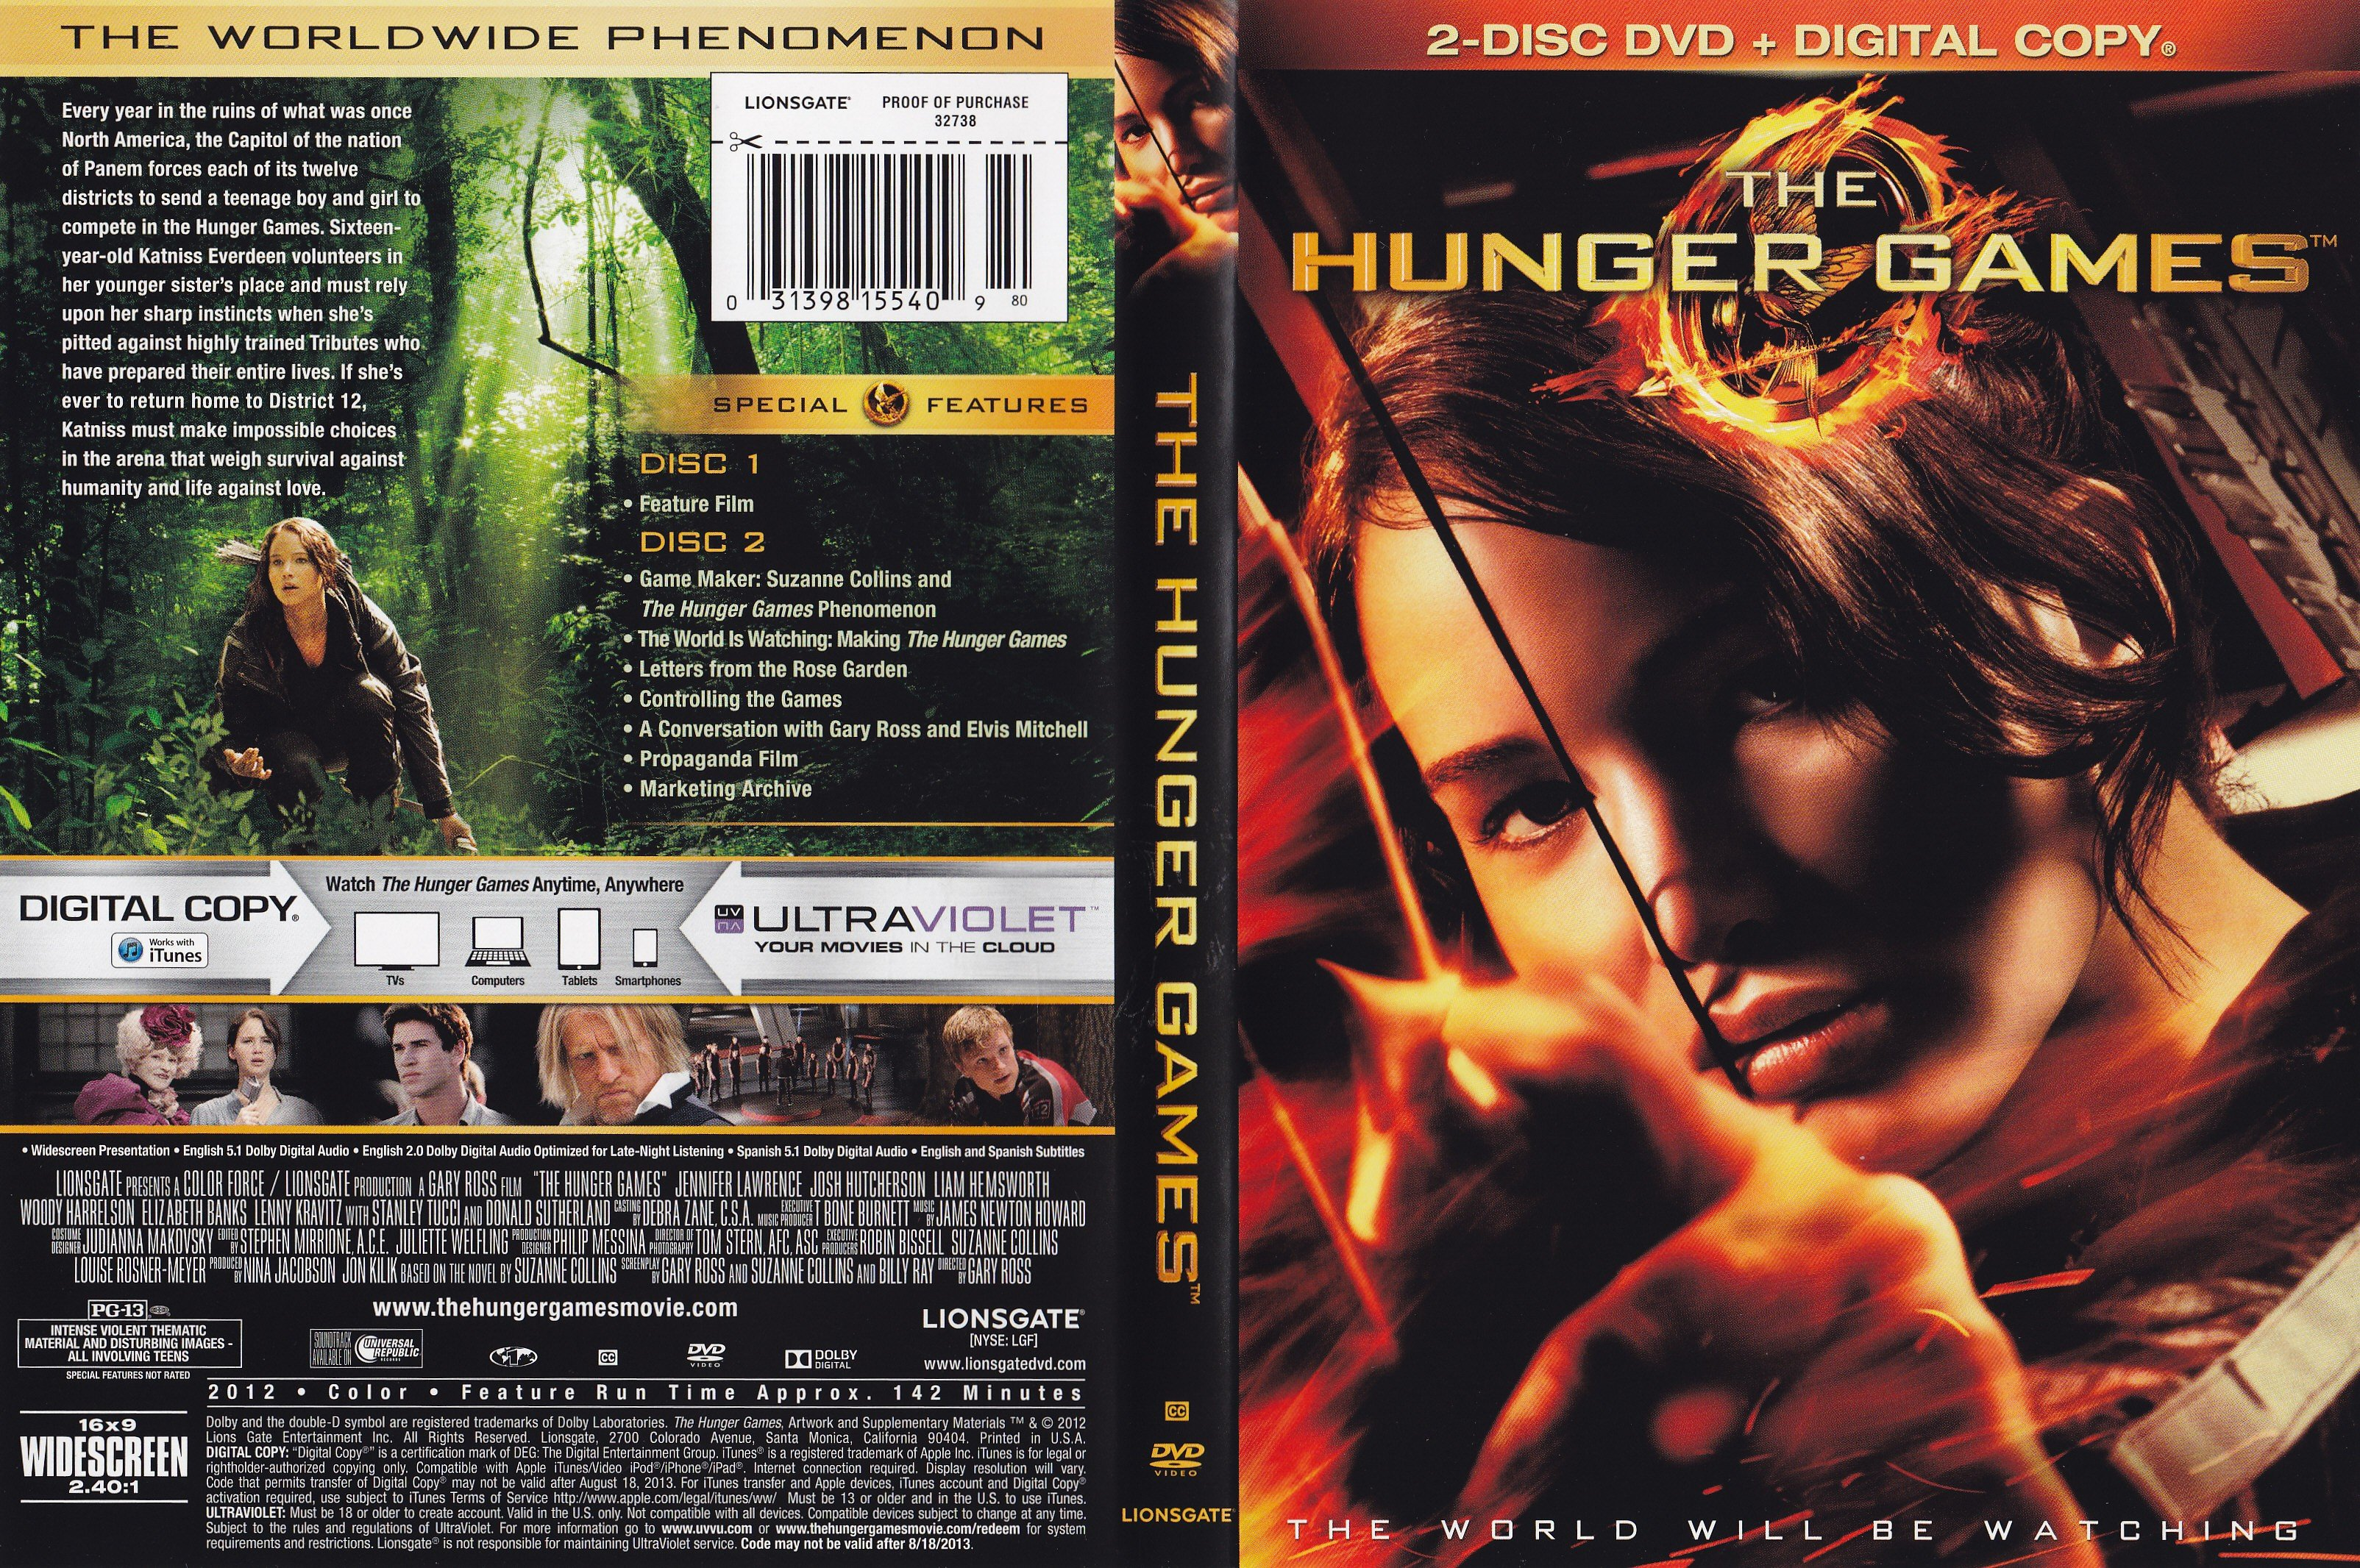 hunger games the republic Ultimate hunger games trivia quiz created by translated by mockingjayrepublic on march 9, 2015 original article by created by translated by mockingjay.